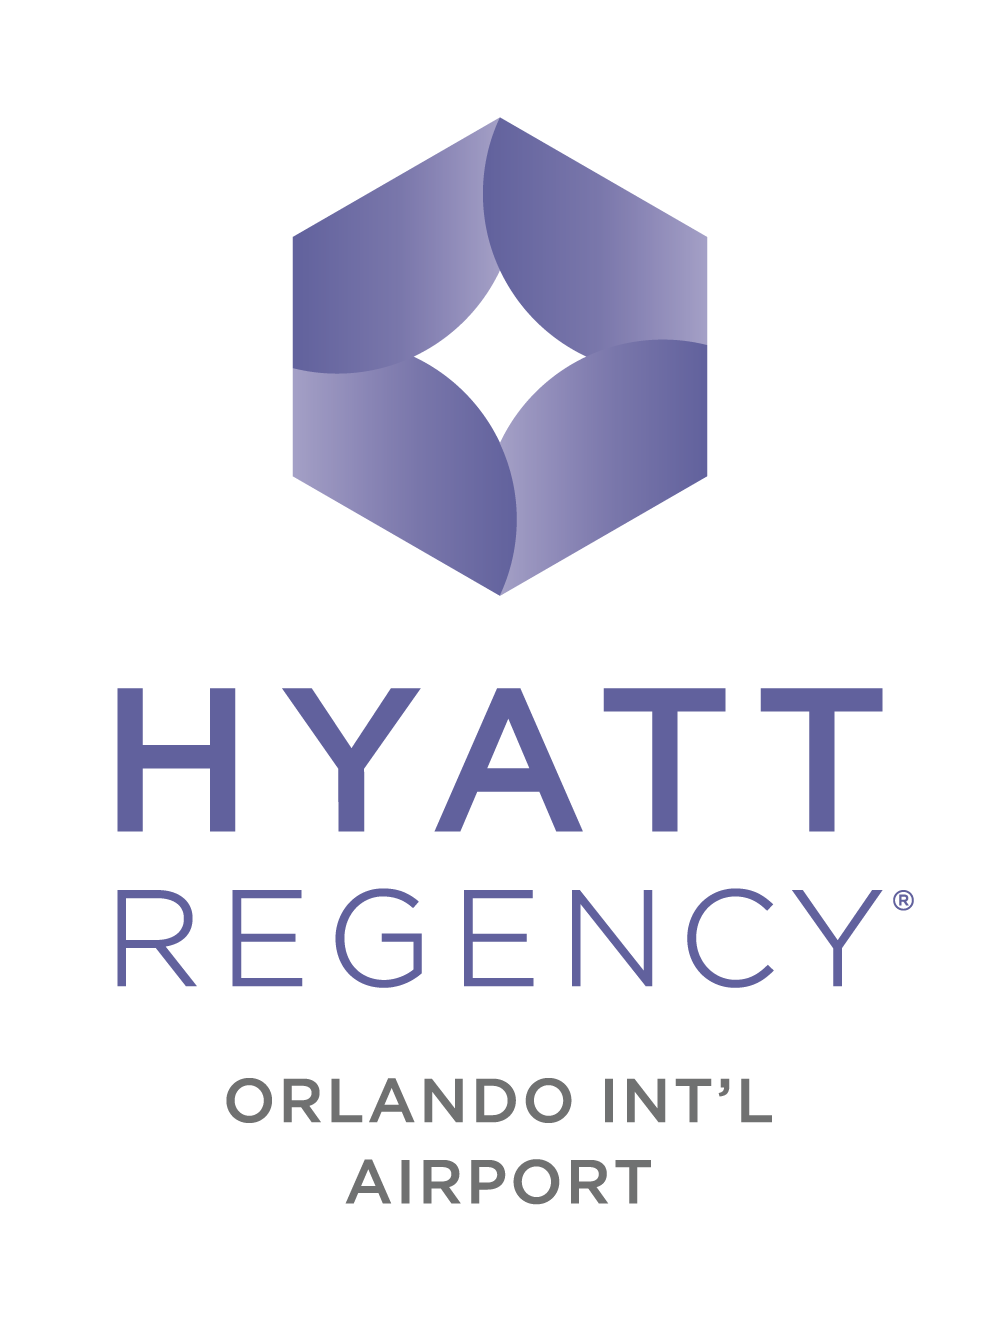 Hyatt Regency Orlando International Airport logo